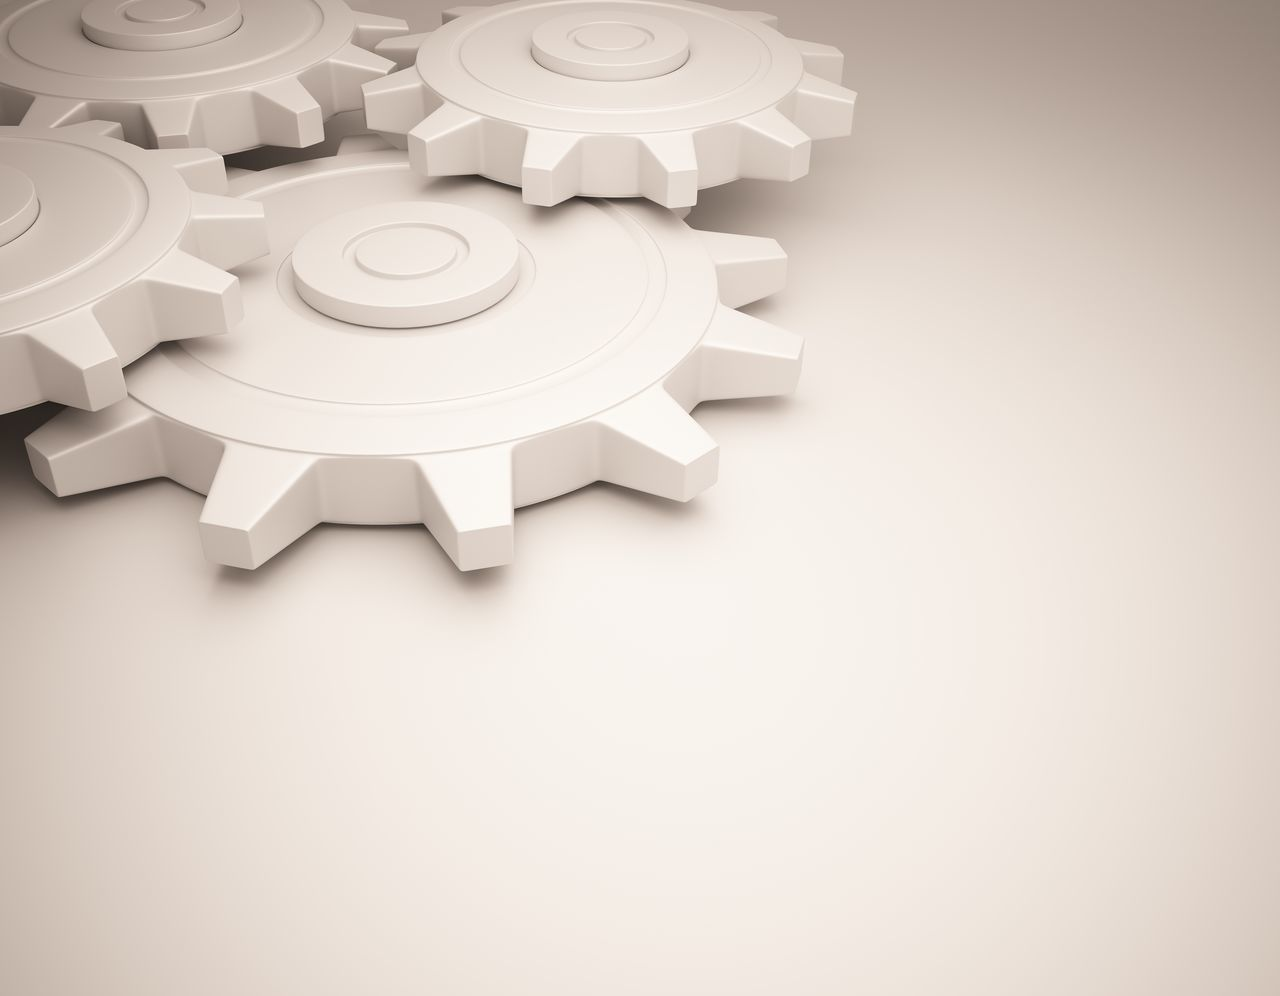 Business Business Close-up Gear Idea Industrial No People Single Object Studio Shot White Background